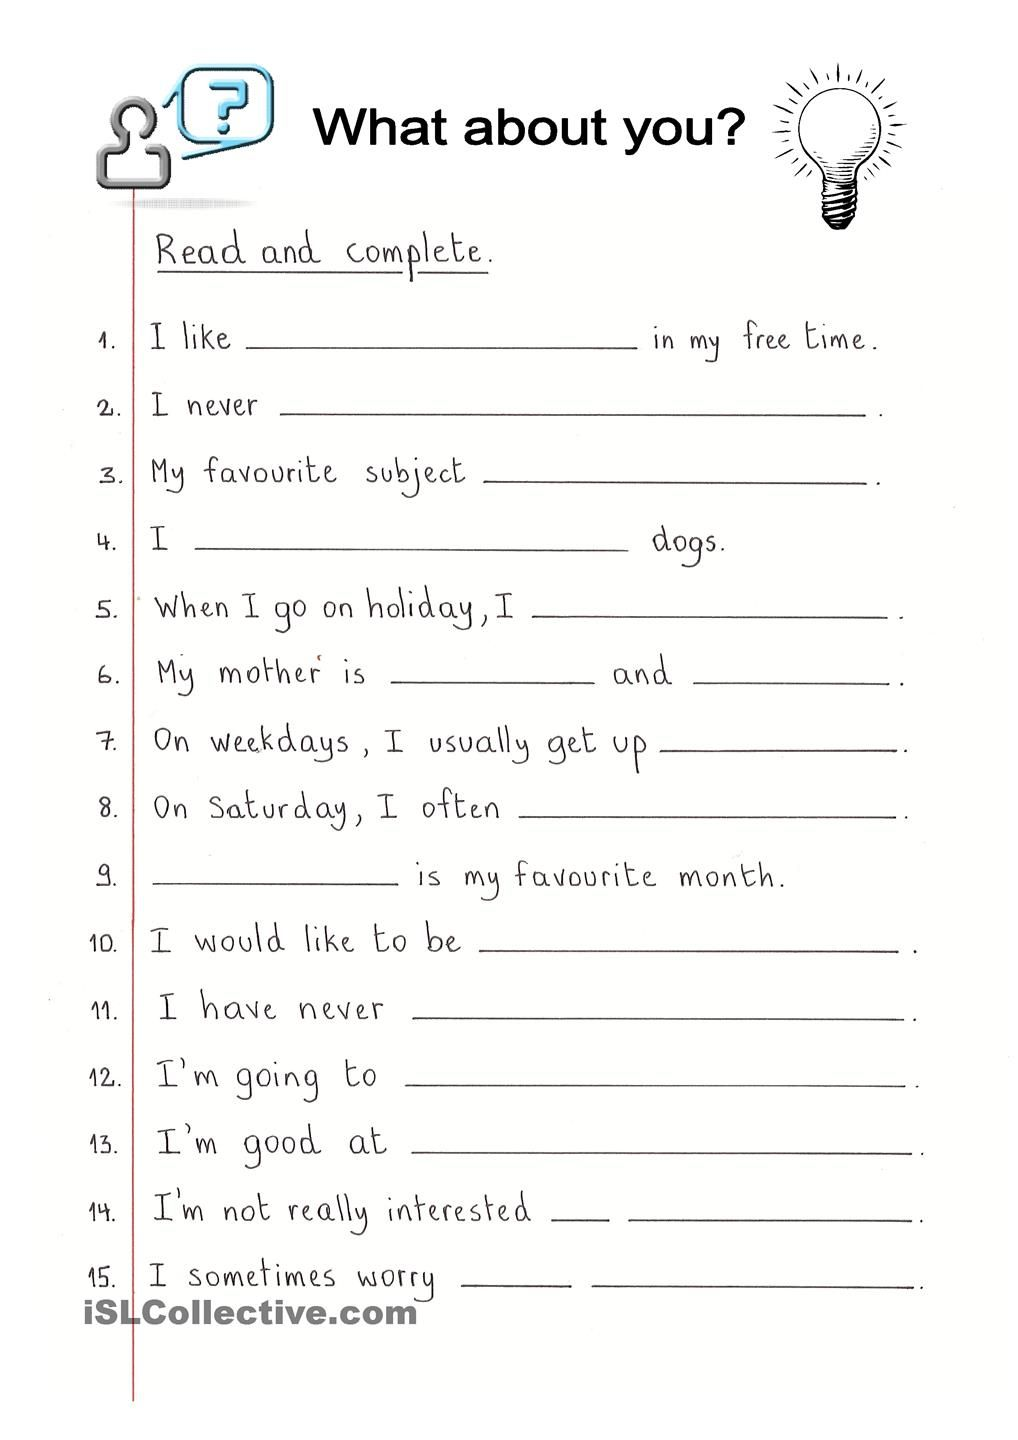 Read and Complete - What about you?   Education   Pinterest ...